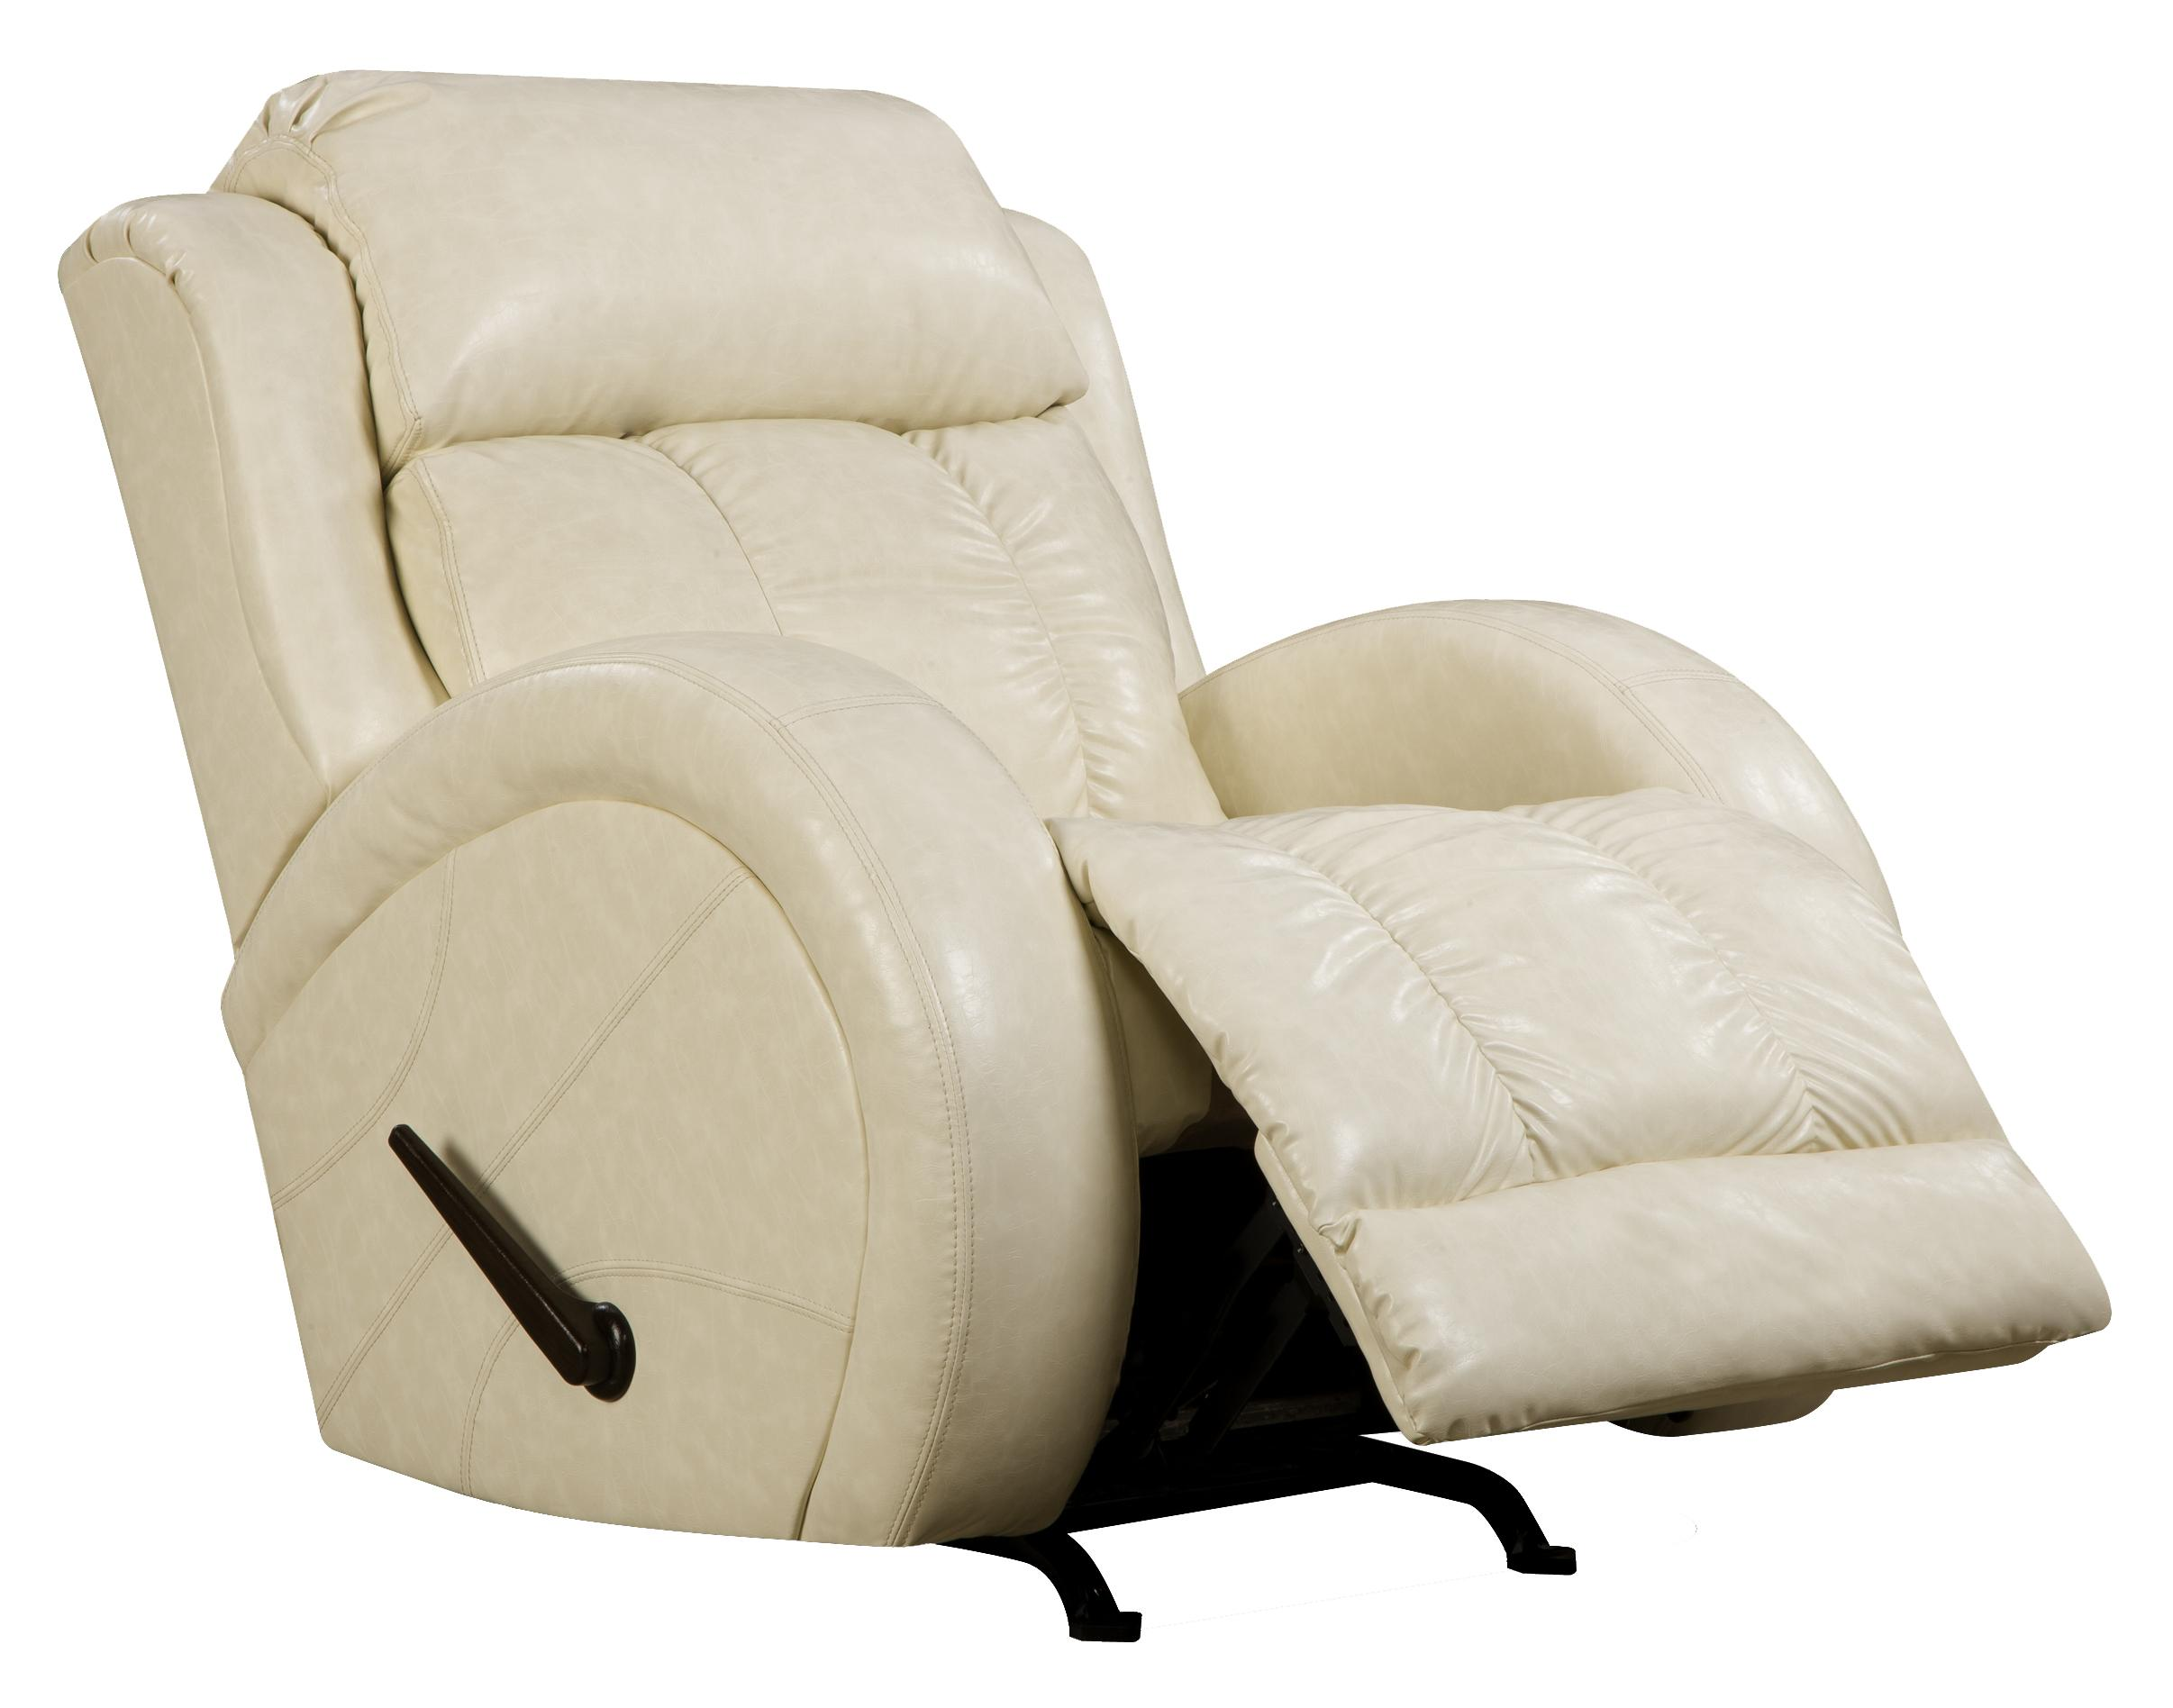 Swivel Rocker Recliner With Sport Style By Southern Motion